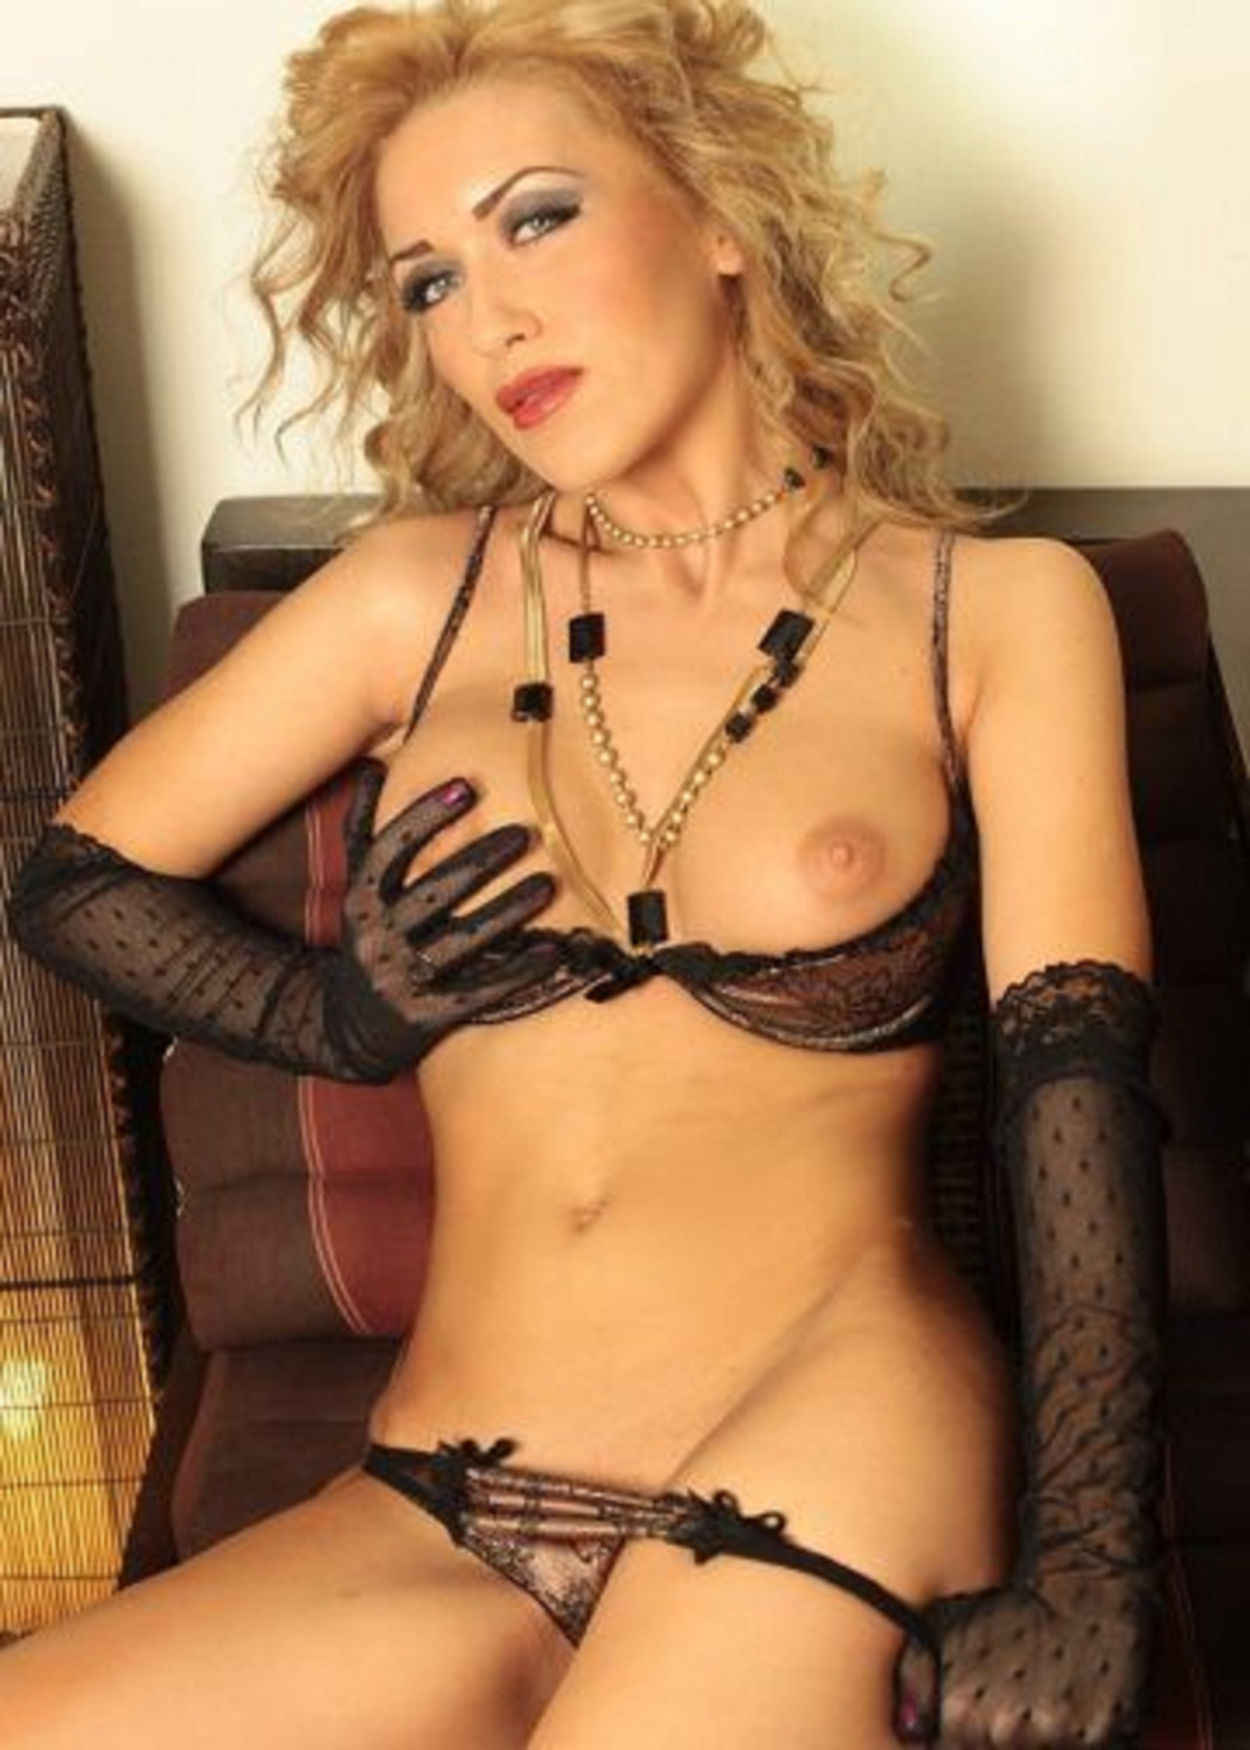 Anna escort in Amsterdam only for mans! –  Amsterdam Escort XXX 0031649864947